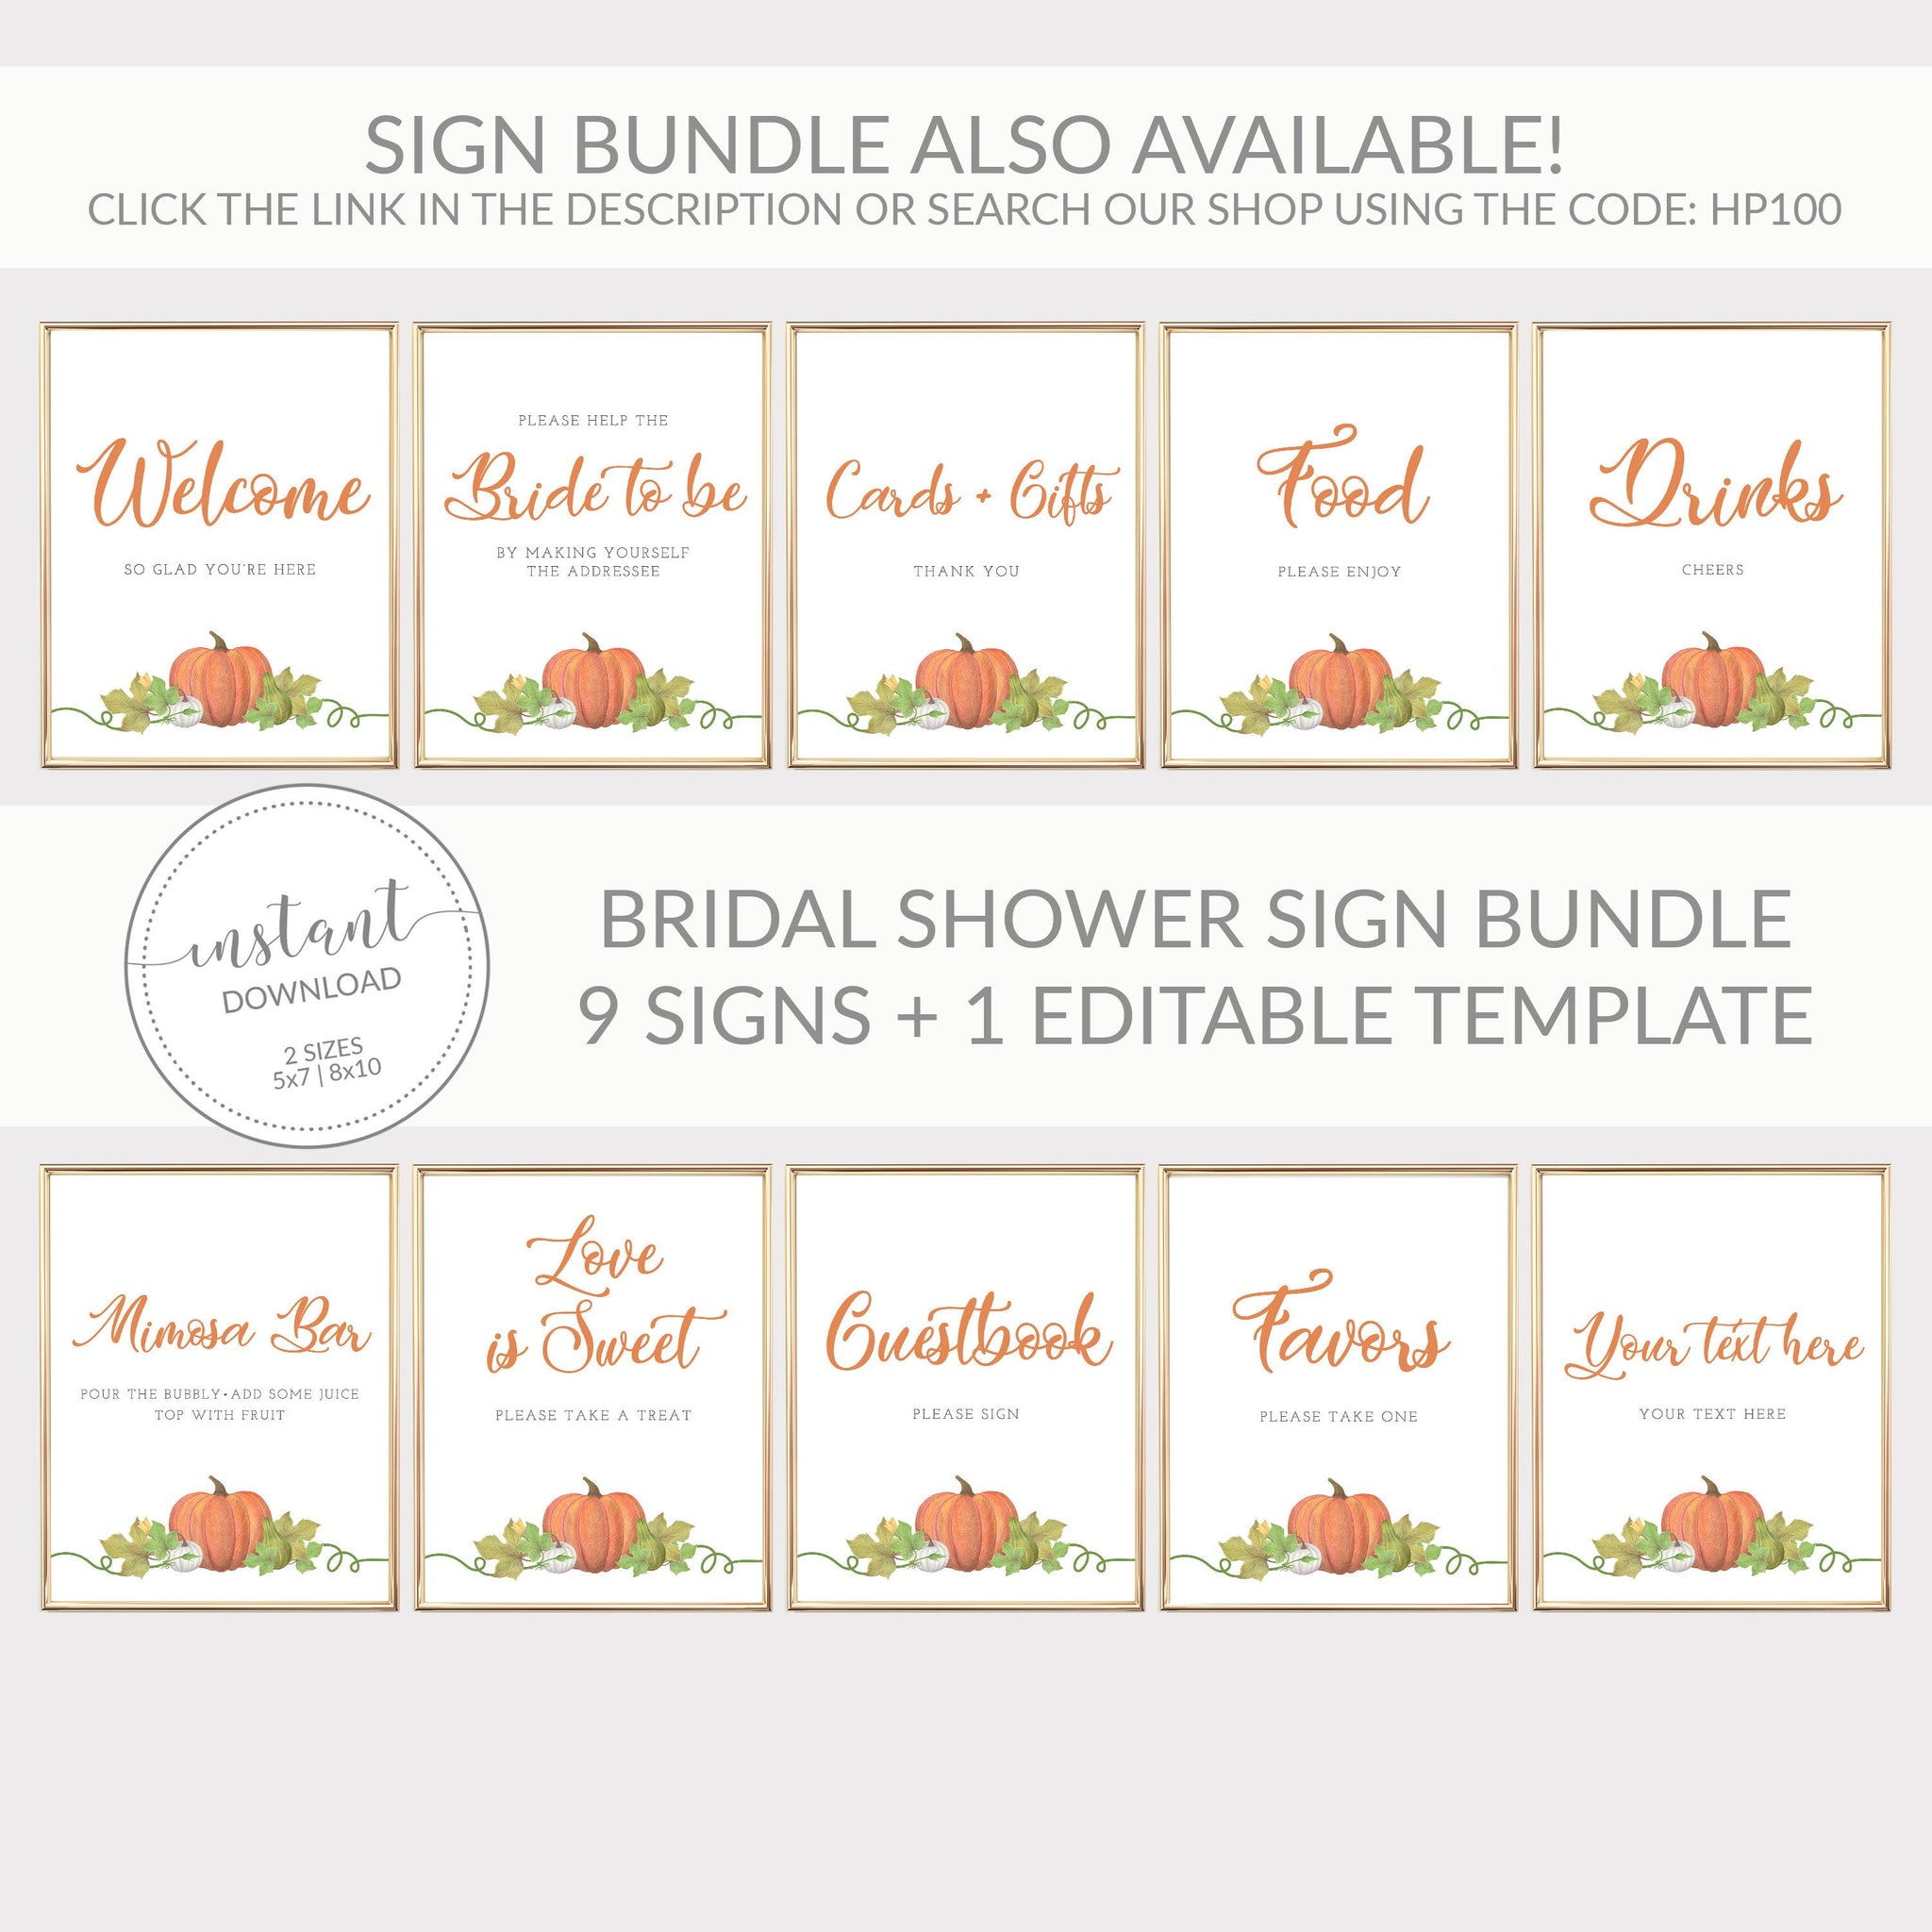 Pumpkin Bridal Shower Love is Sweet Treat Sign INSTANT DOWNLOAD, Bridal Shower Dessert Table Sign, Pumpkin Bridal Shower Decorations - HP100 - @PlumPolkaDot